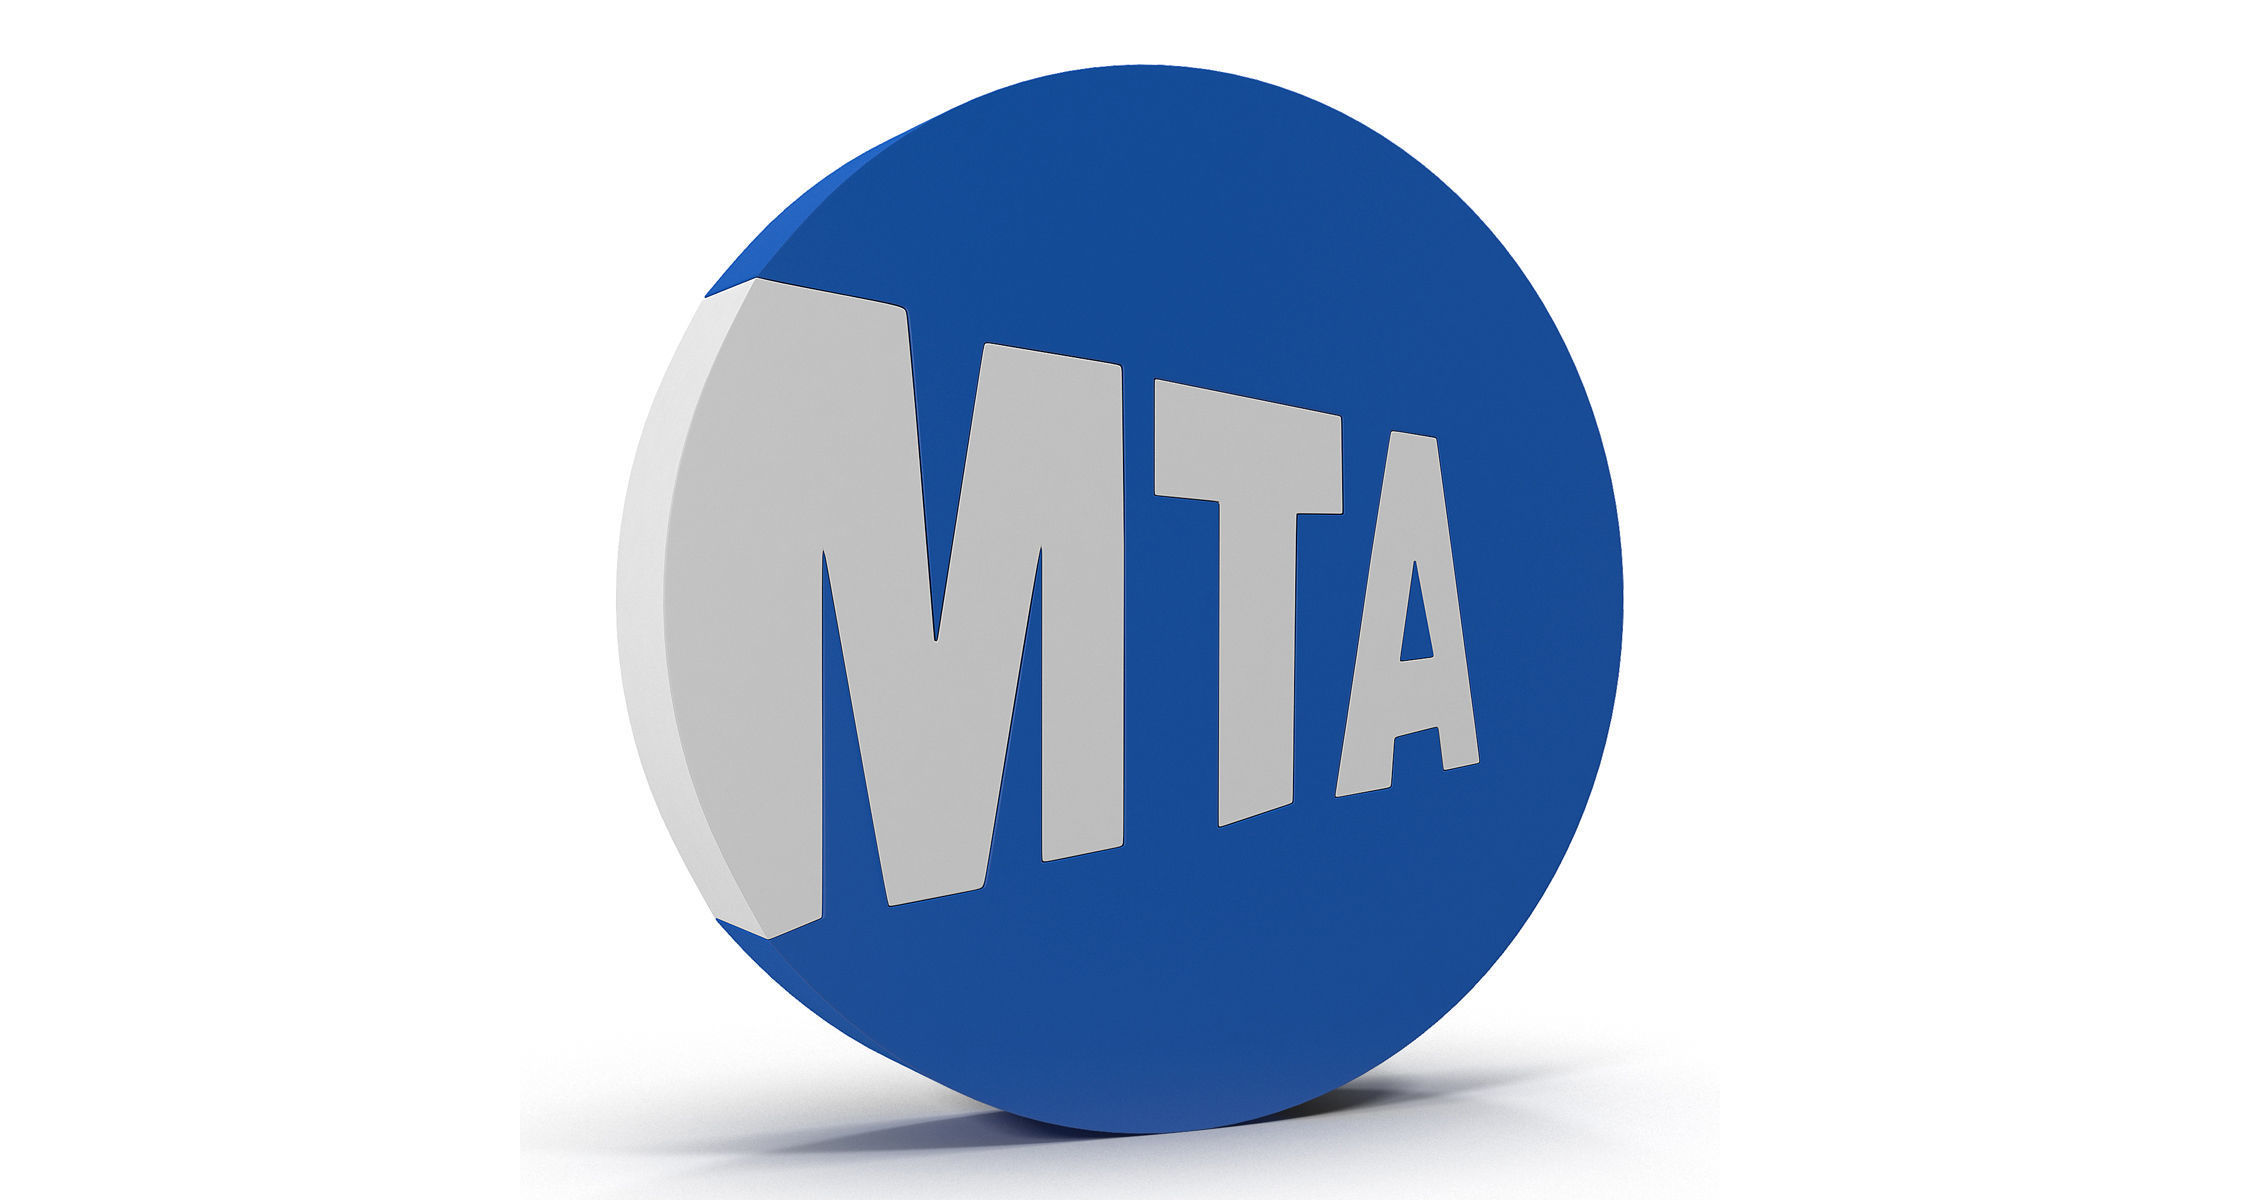 New York Subway Logo